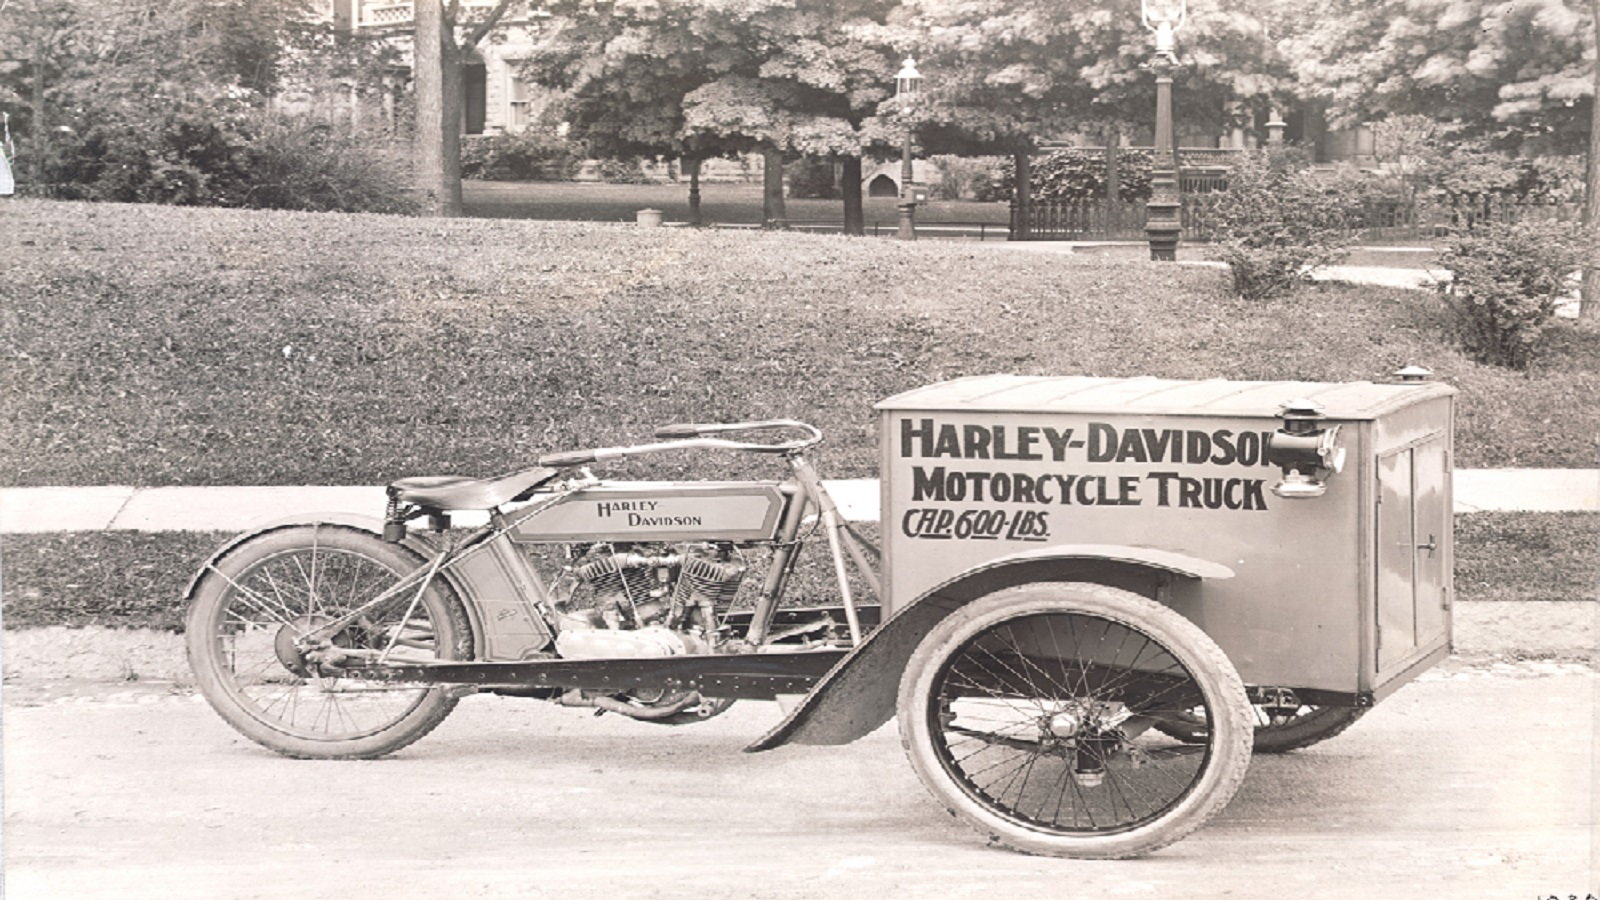 1913 Motorcycle Truck